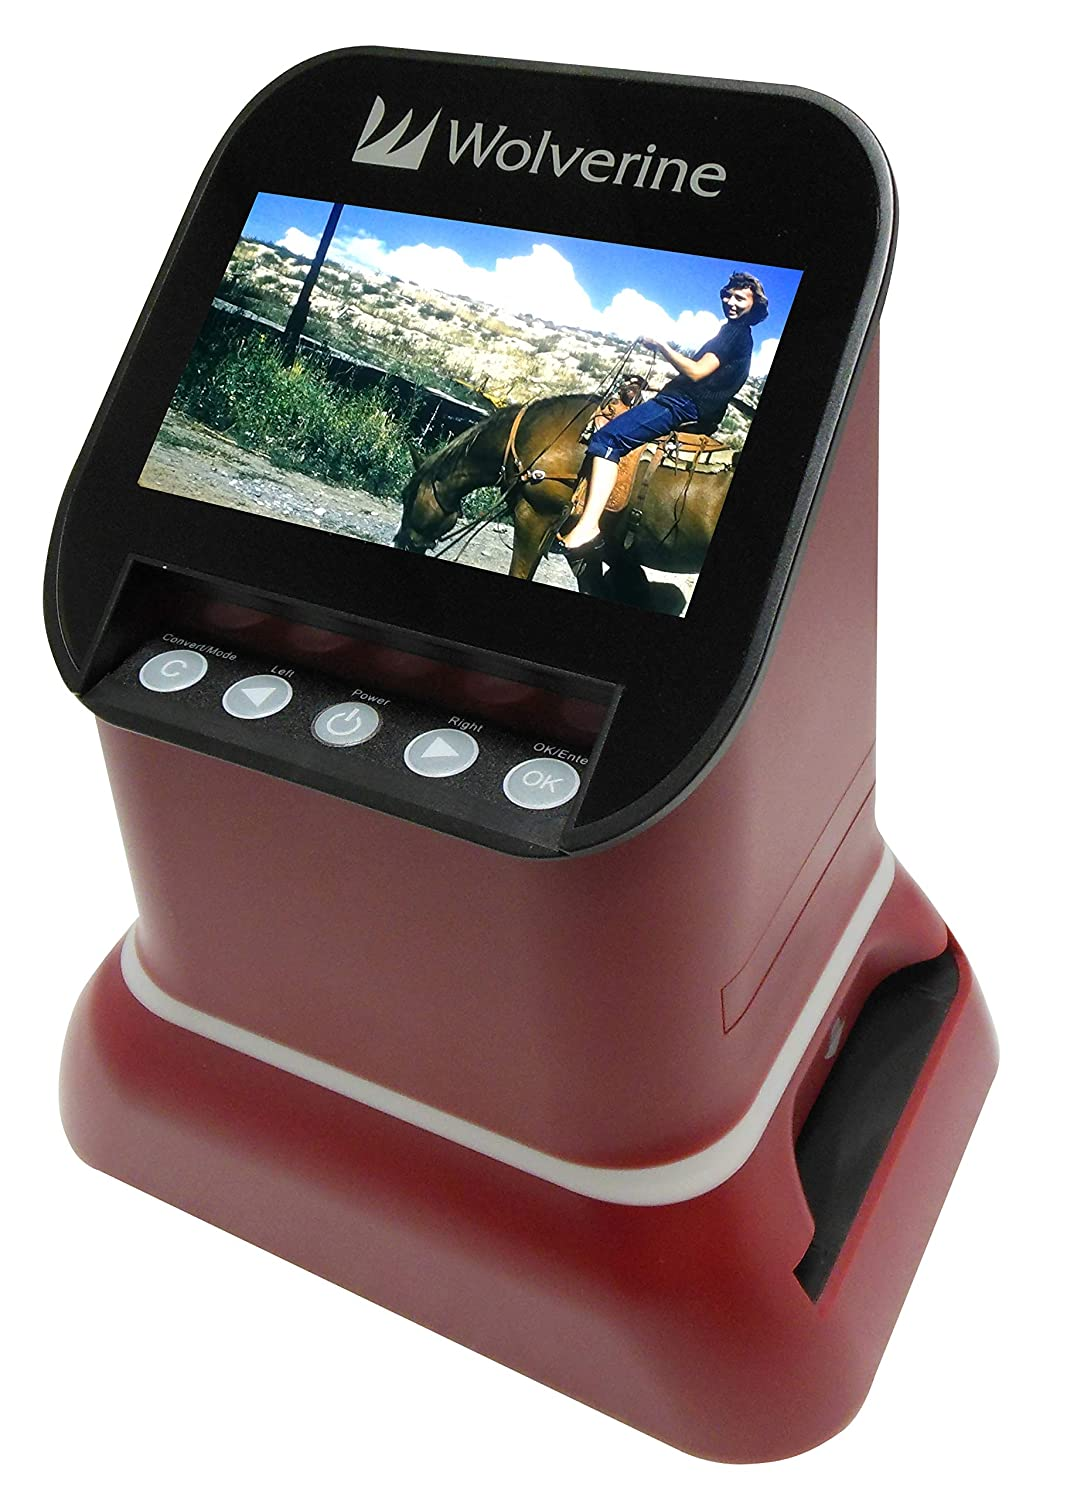 """Wolverine F2D Saturn Digital Film & Slide Scanner - Converts 120 Medium Format, 127 Film, Microfiche, 35mm Negatives & Slides to Digital - 4.3"""" LCD, 16GB SD Card, Z-Cloth & HDMI Cable Included (Red)"""